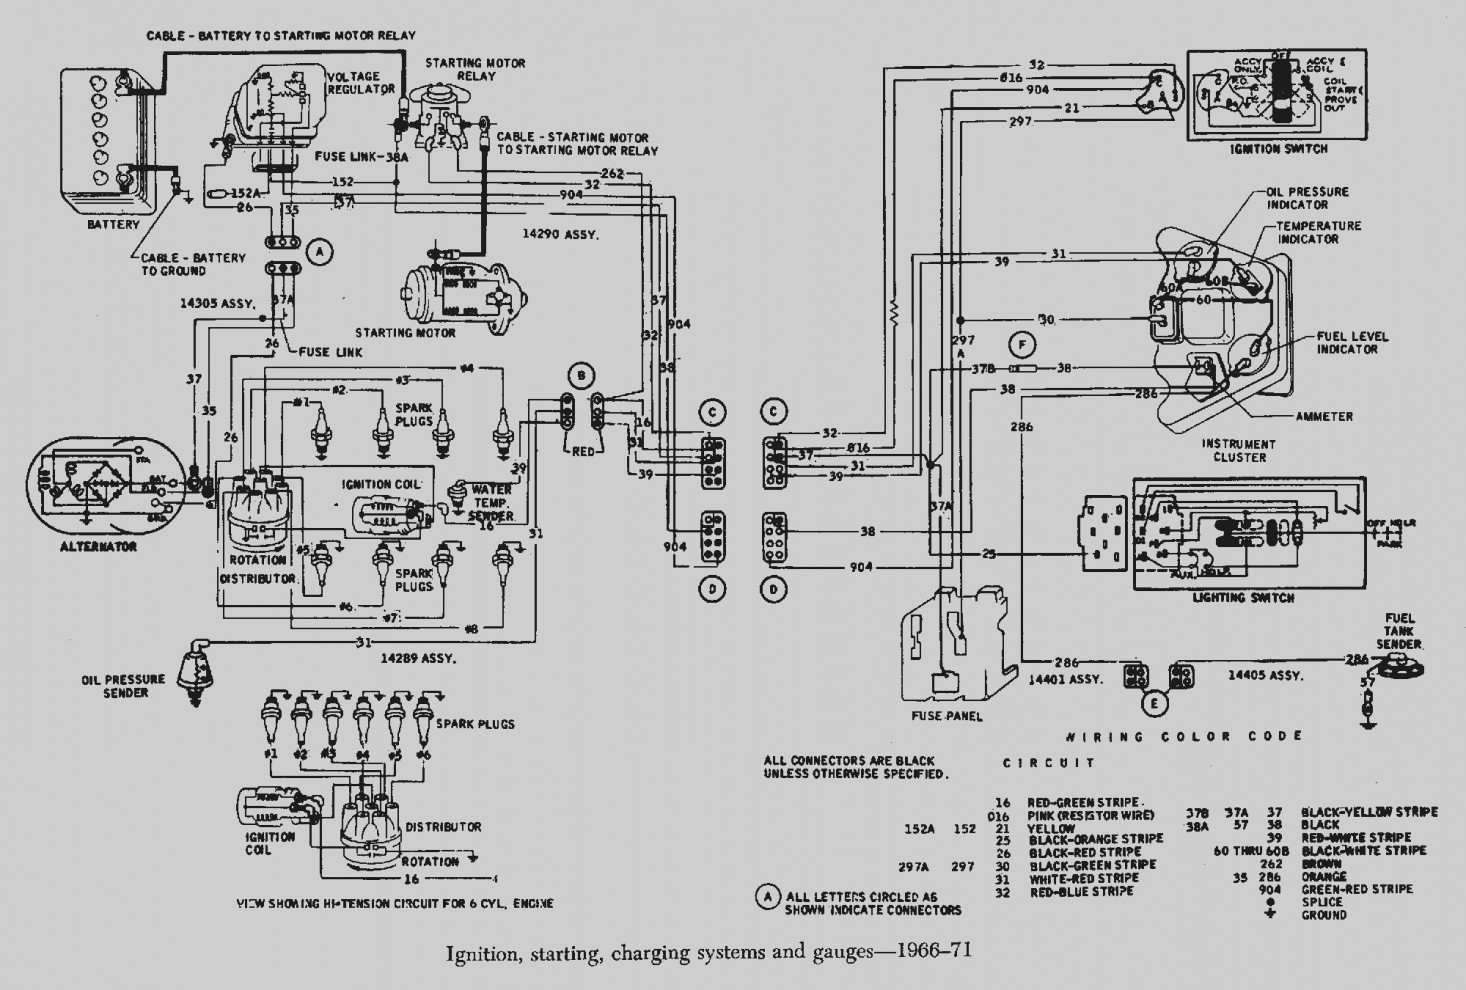 hight resolution of spark plug wiring diagram chevy 350 new wiring diagram image rh 10 skriptoase de 3 wire